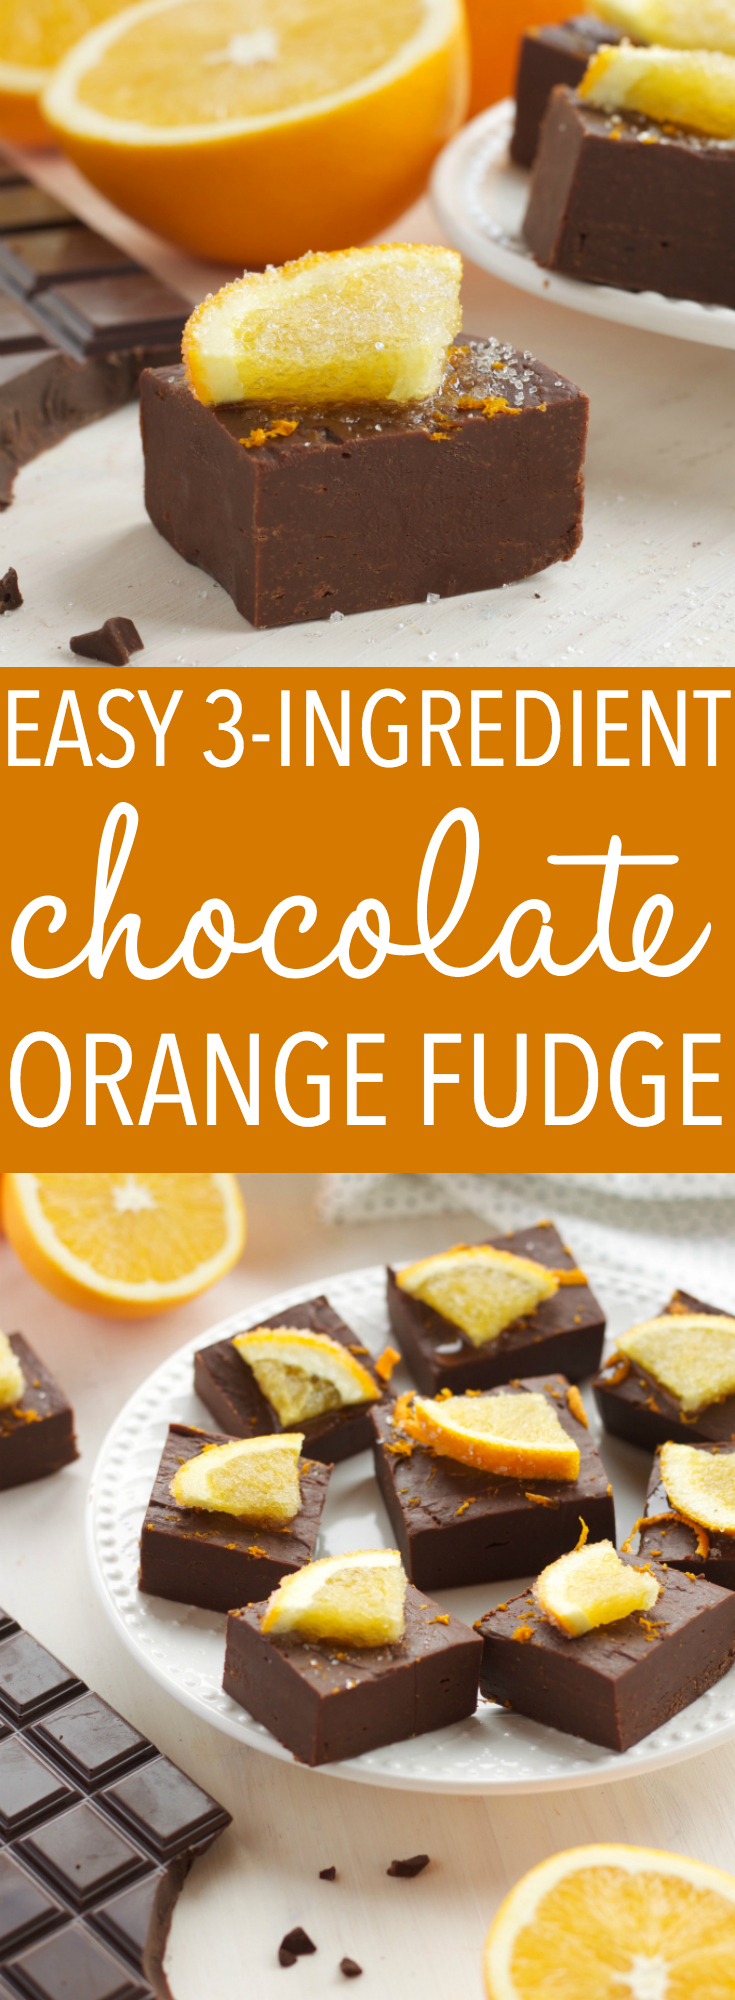 This Easy 3-Ingredient Chocolate Orange Fudge is the perfect Christmas treat for the holidays that's easy to make in just minutes! Recipe from thebusybaker.ca! #chocolatefudge #homemadefudge #easyfudgerecipe #christmasfudgerecipe #chocolateorange via @busybakerblog